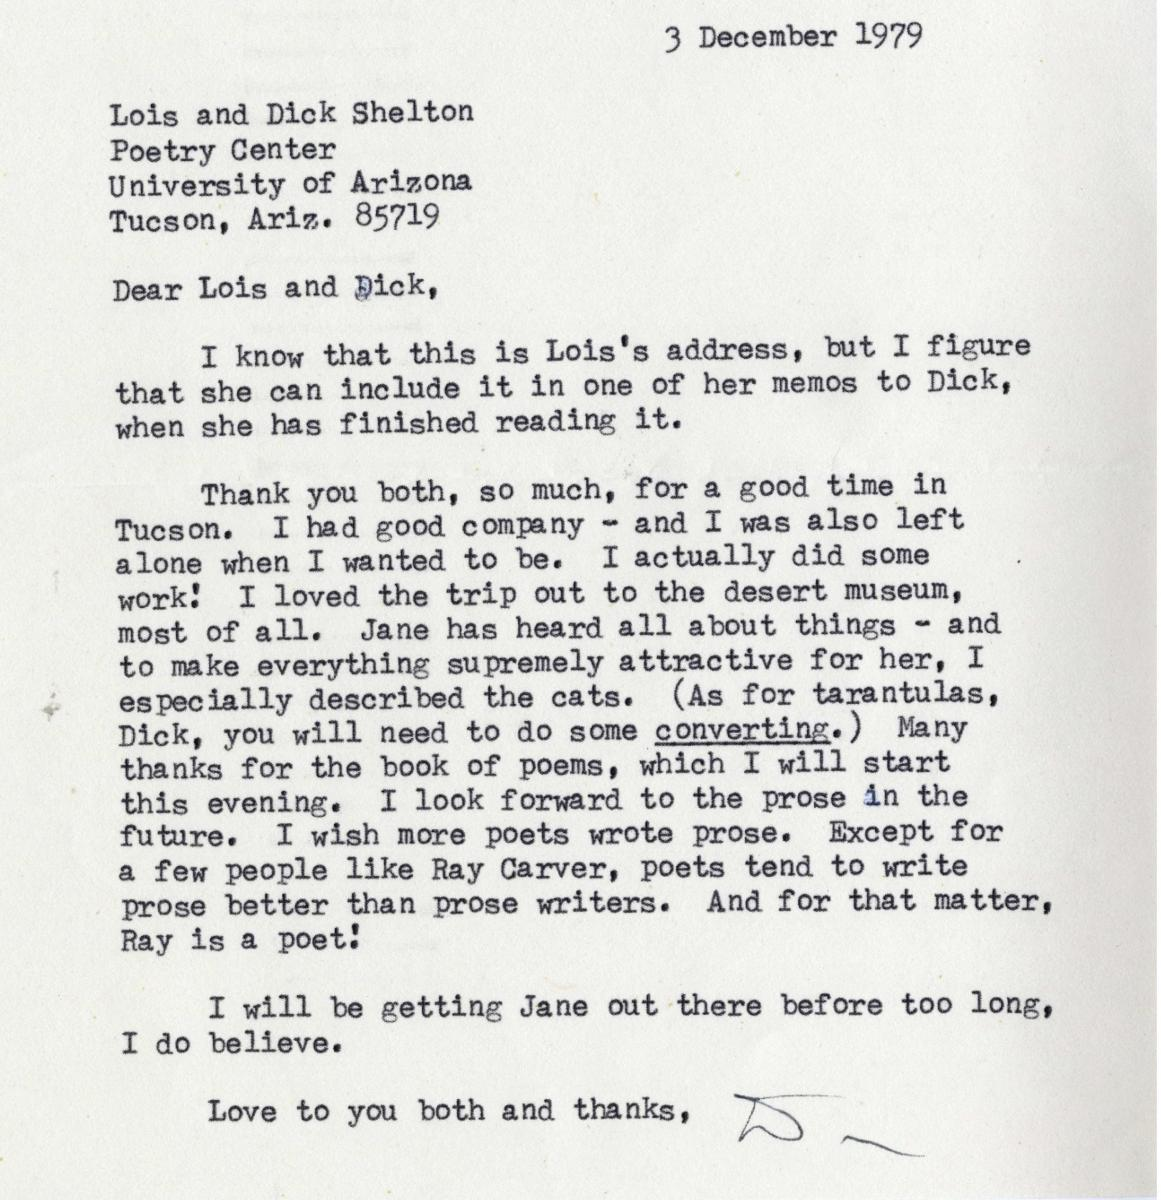 Typed letter from Donald Hall to Lois and Richard Shelton